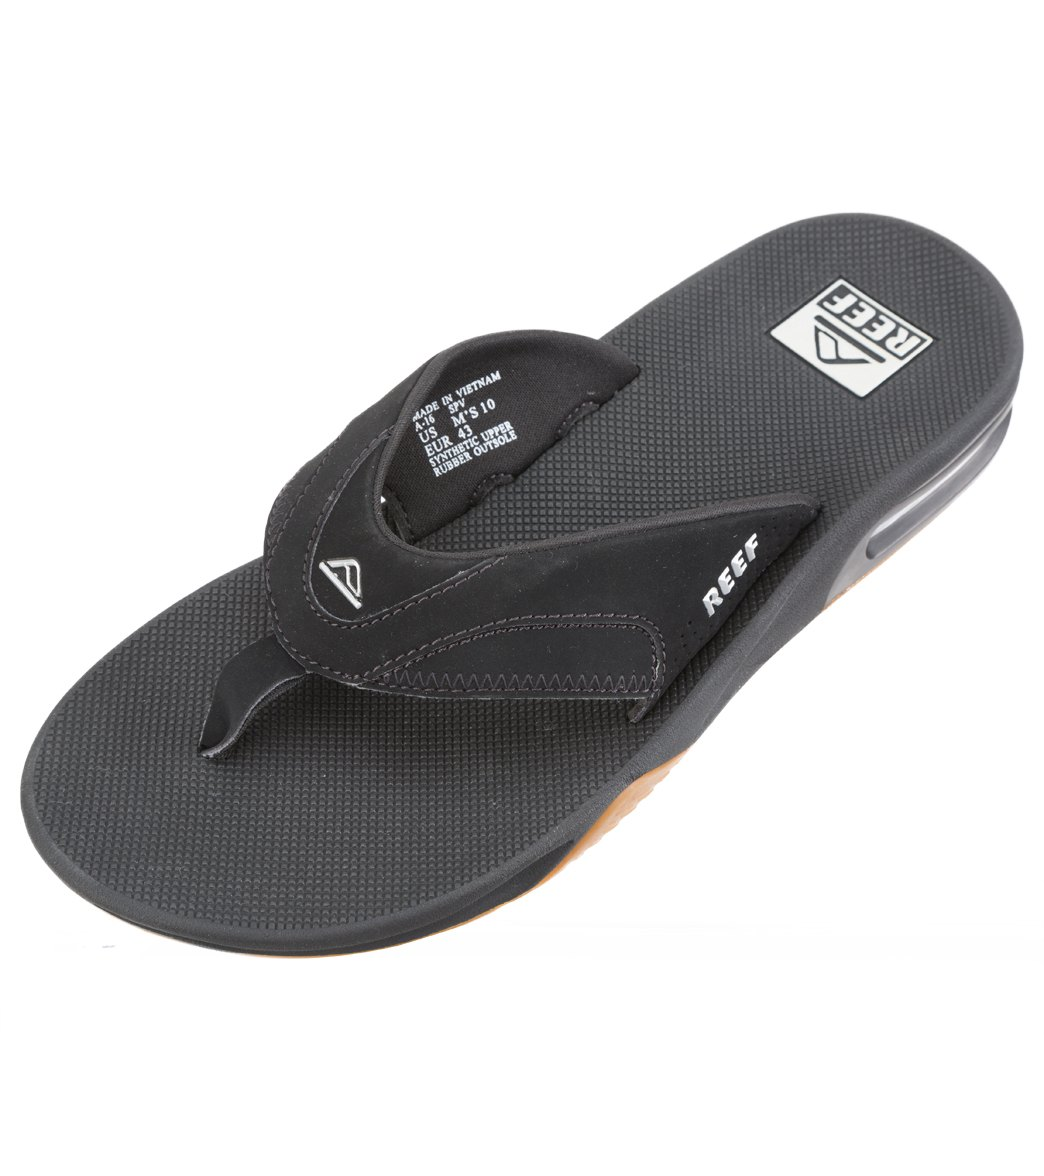 c2a461e0f0aa Reef Men s Fanning Flip Flop at SwimOutlet.com - Free Shipping